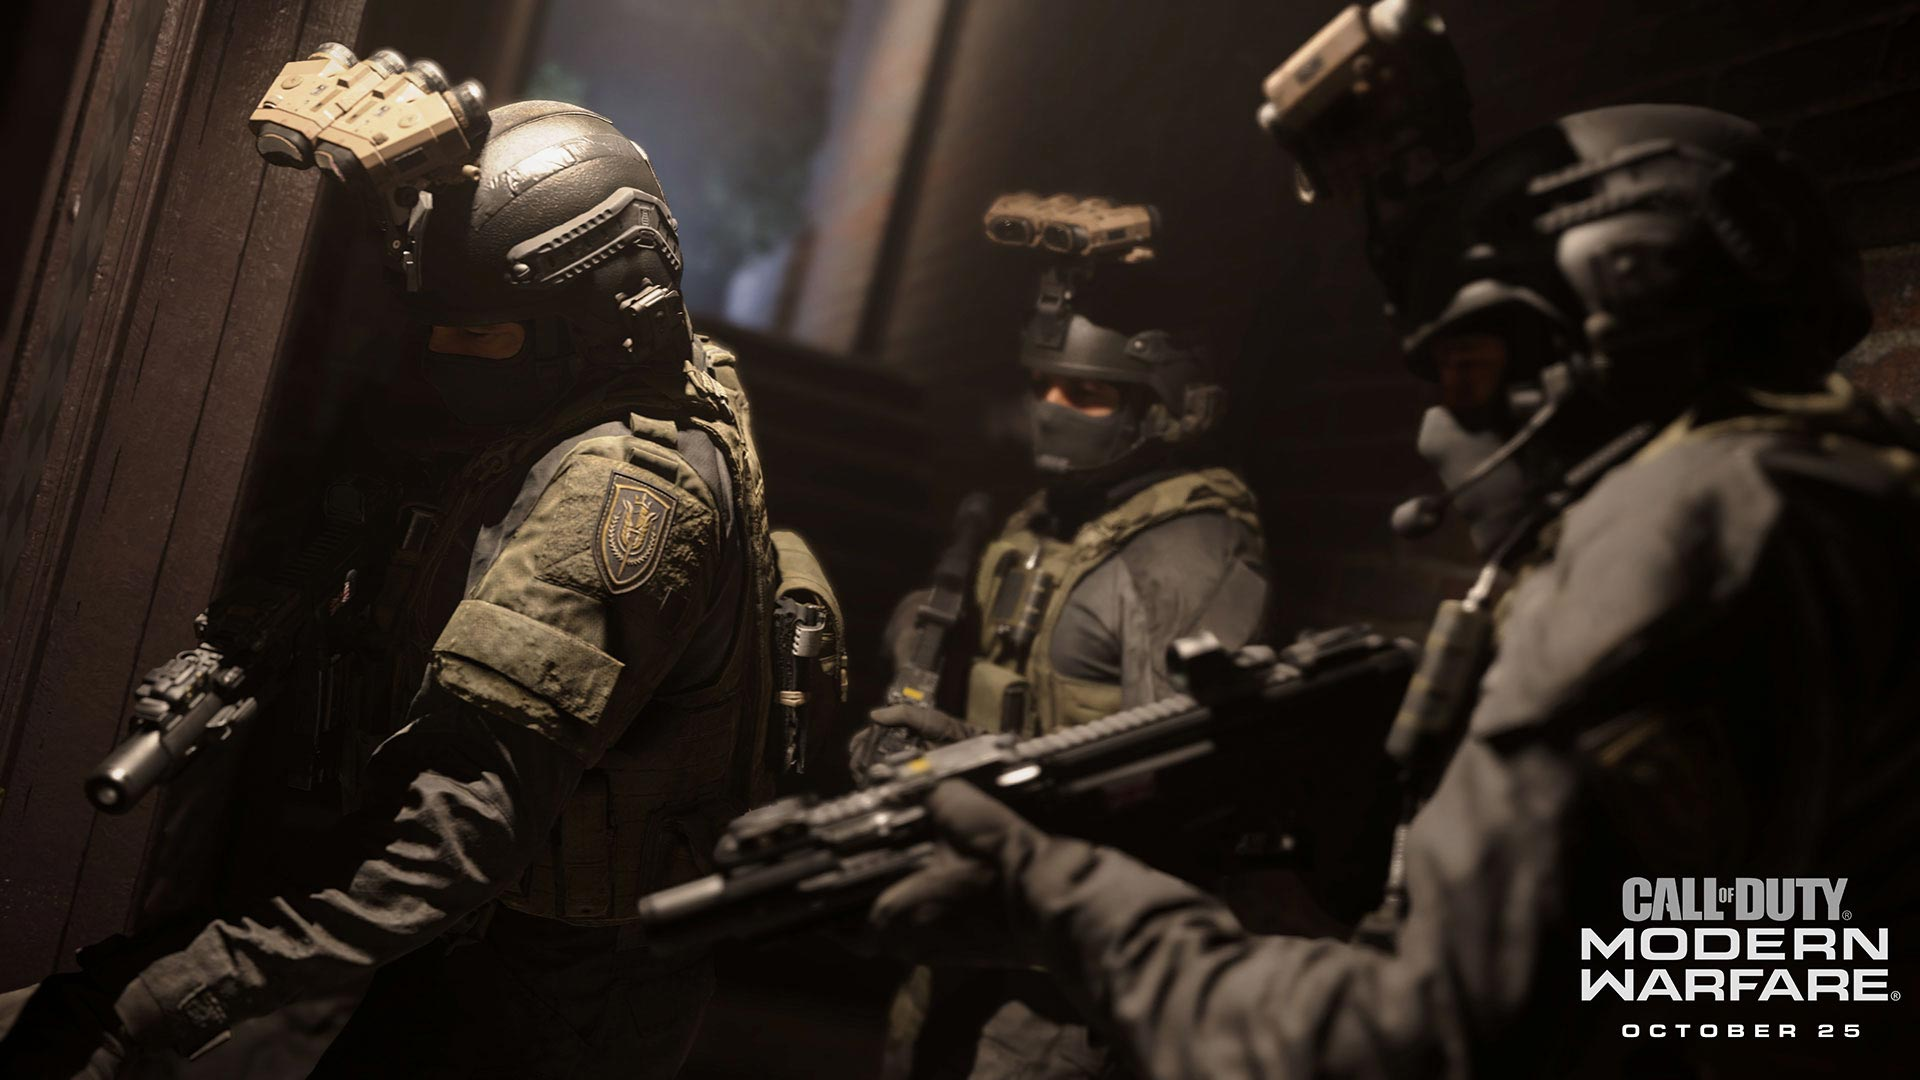 Call of Duty: Modern Warfare SAS team